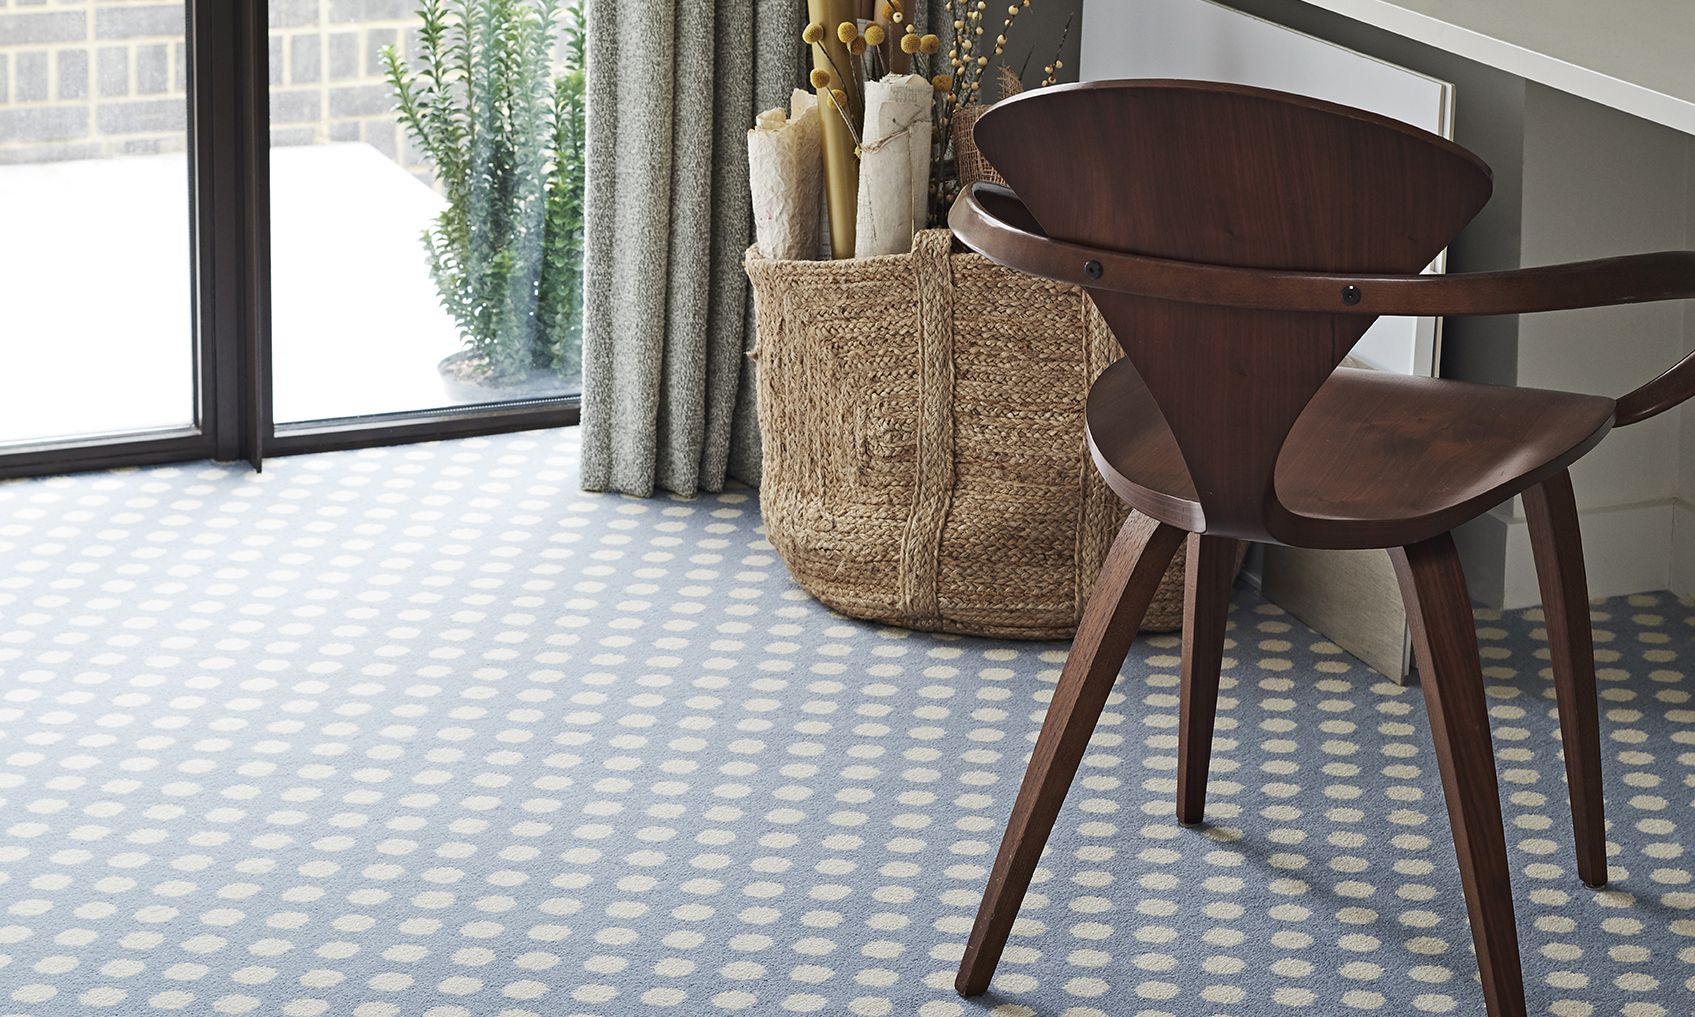 cleaning and caring for your new carpet